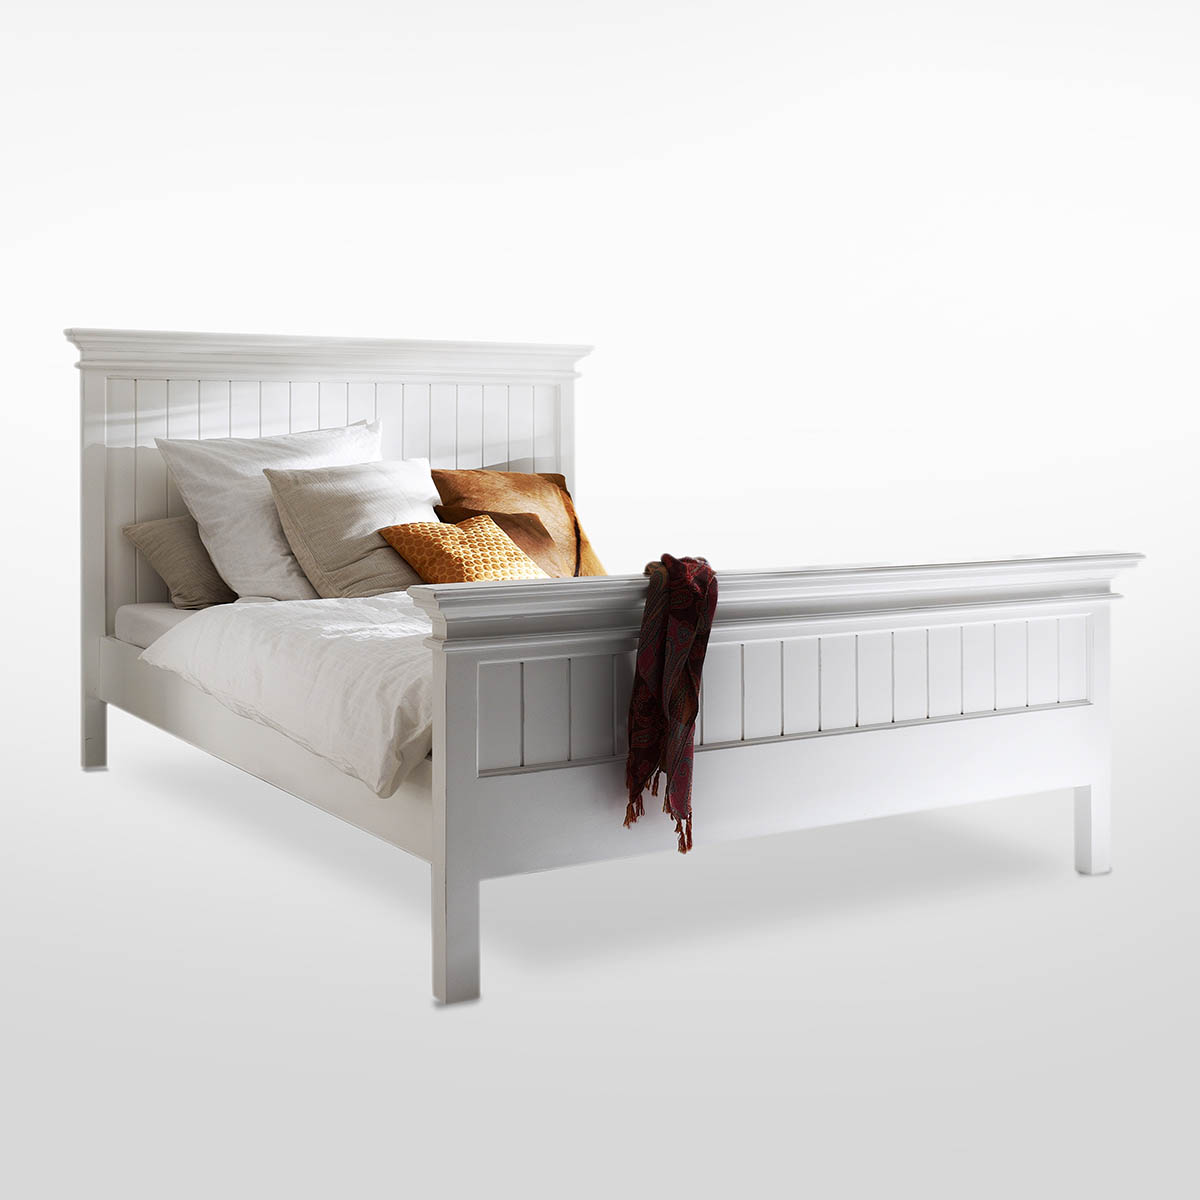 Queen Size Bett Queen Size Landhaus Bett Eu 160x200 Kids And Homestyle